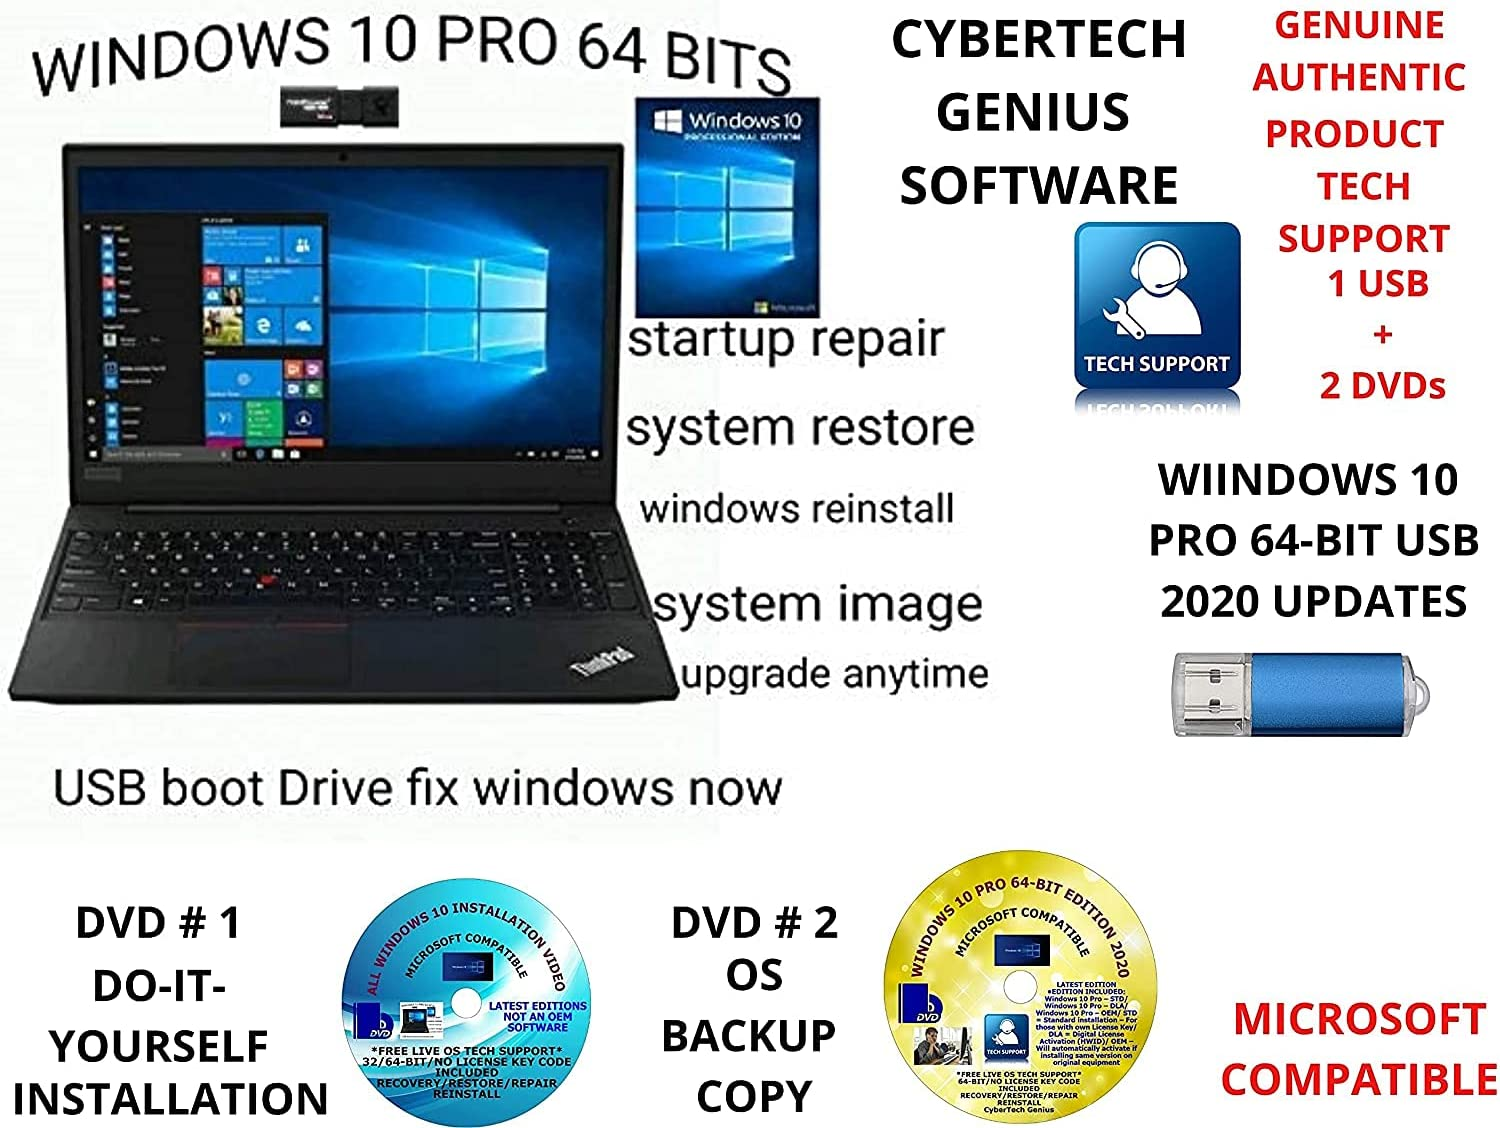 WINDOWS 10 PRO LATEST EDITION 2020 64-BIT USB + 2 FREE DVDs 1 DO-IT-YOURSELF INSTALL/REINSTALL VIDEO & 1 BACKUP COPY. UPGRADE RECOVERY FIX RESTORE REPAIR BOOT LIVE TECH SUPPORT COMPATIBLE TO MICROSOFT